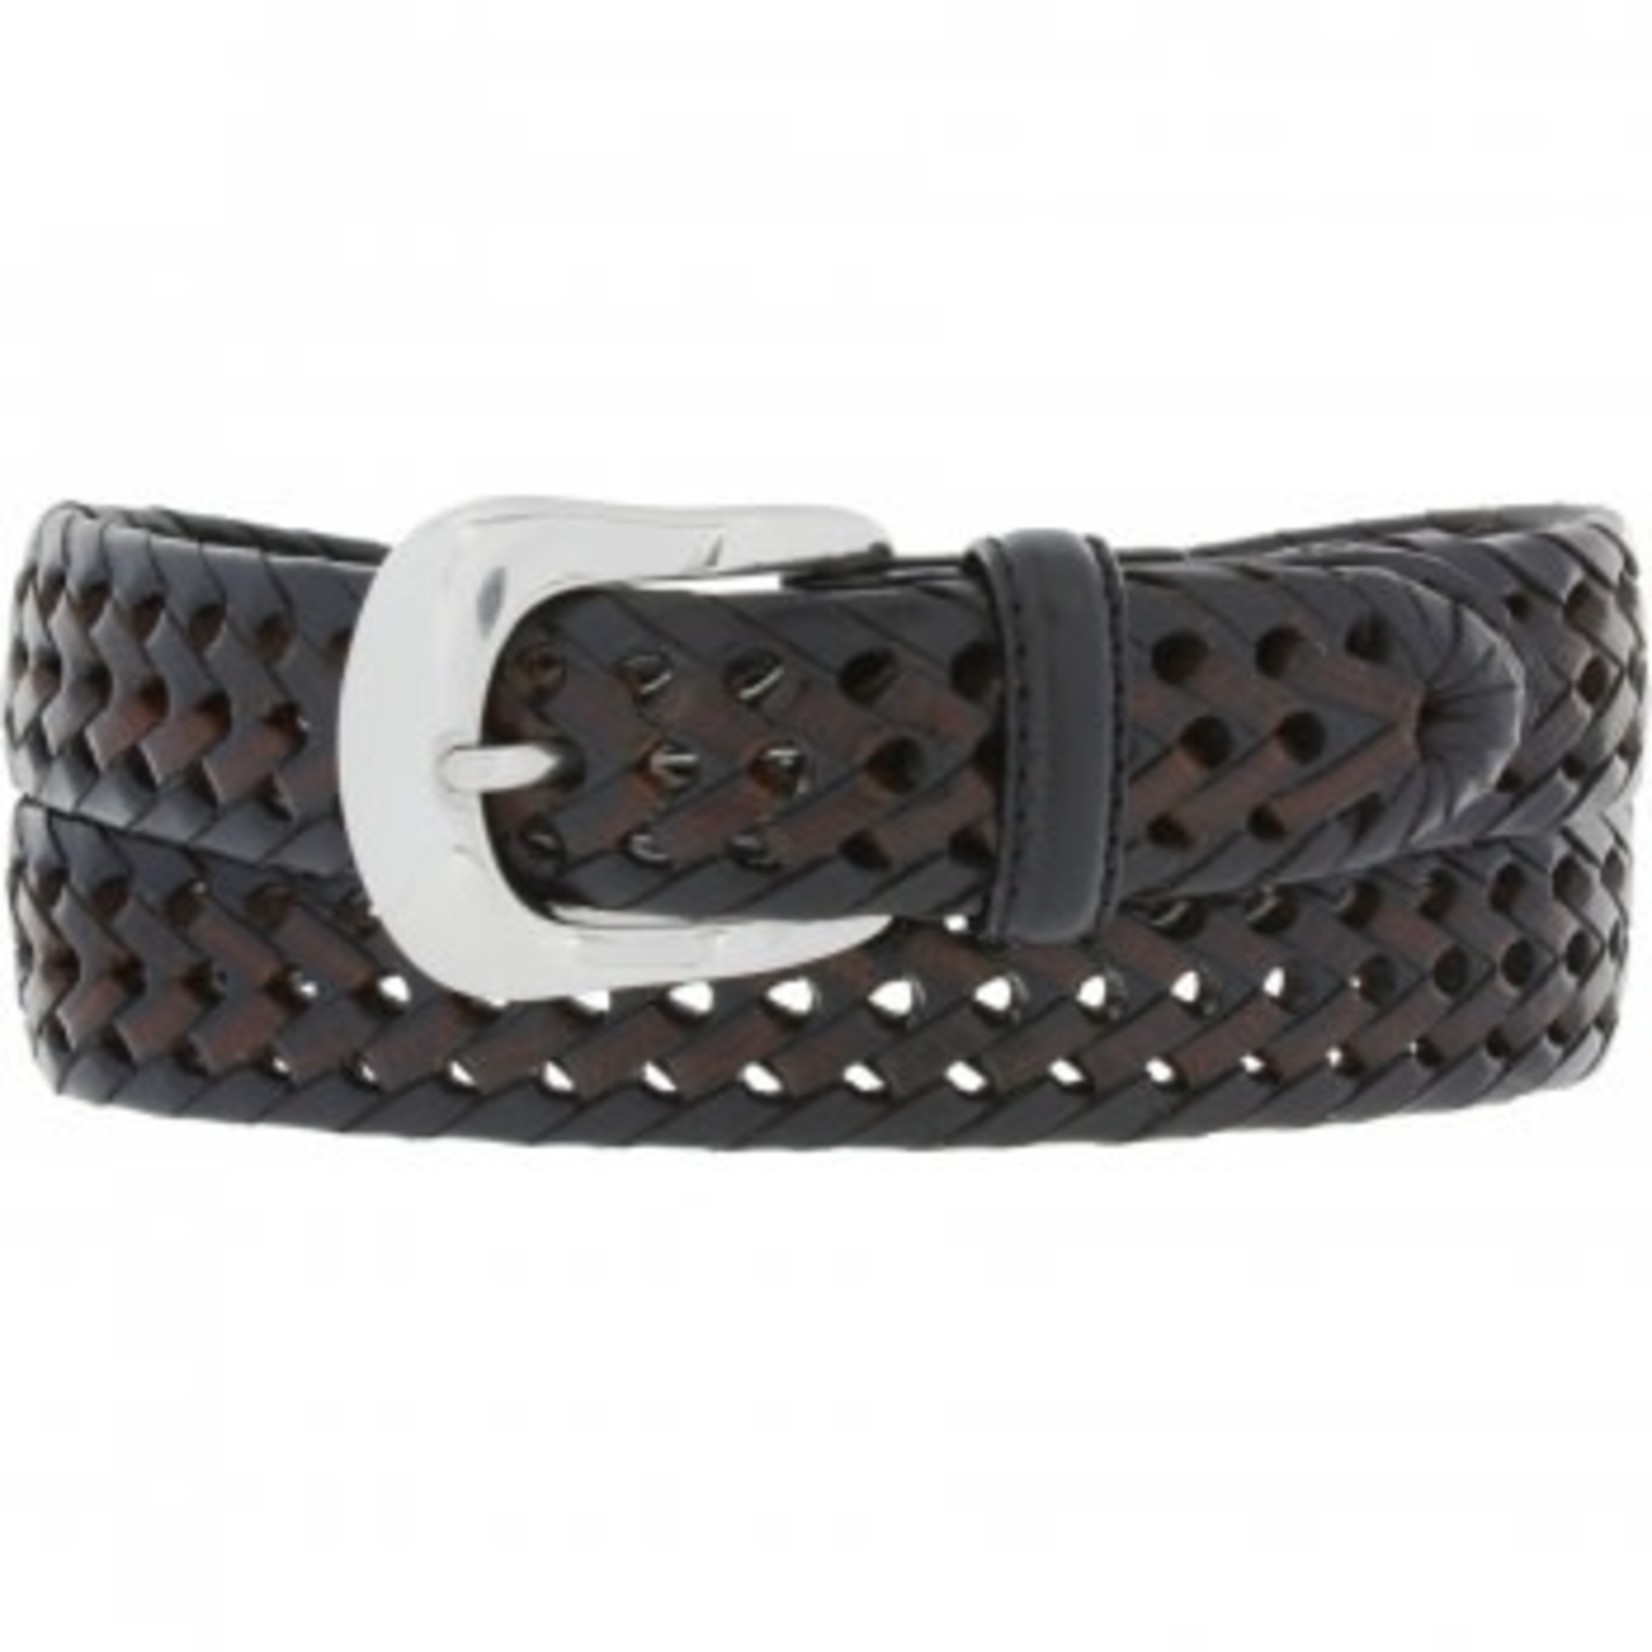 Brighton Burma Laced Belt Black/Brown Size 36